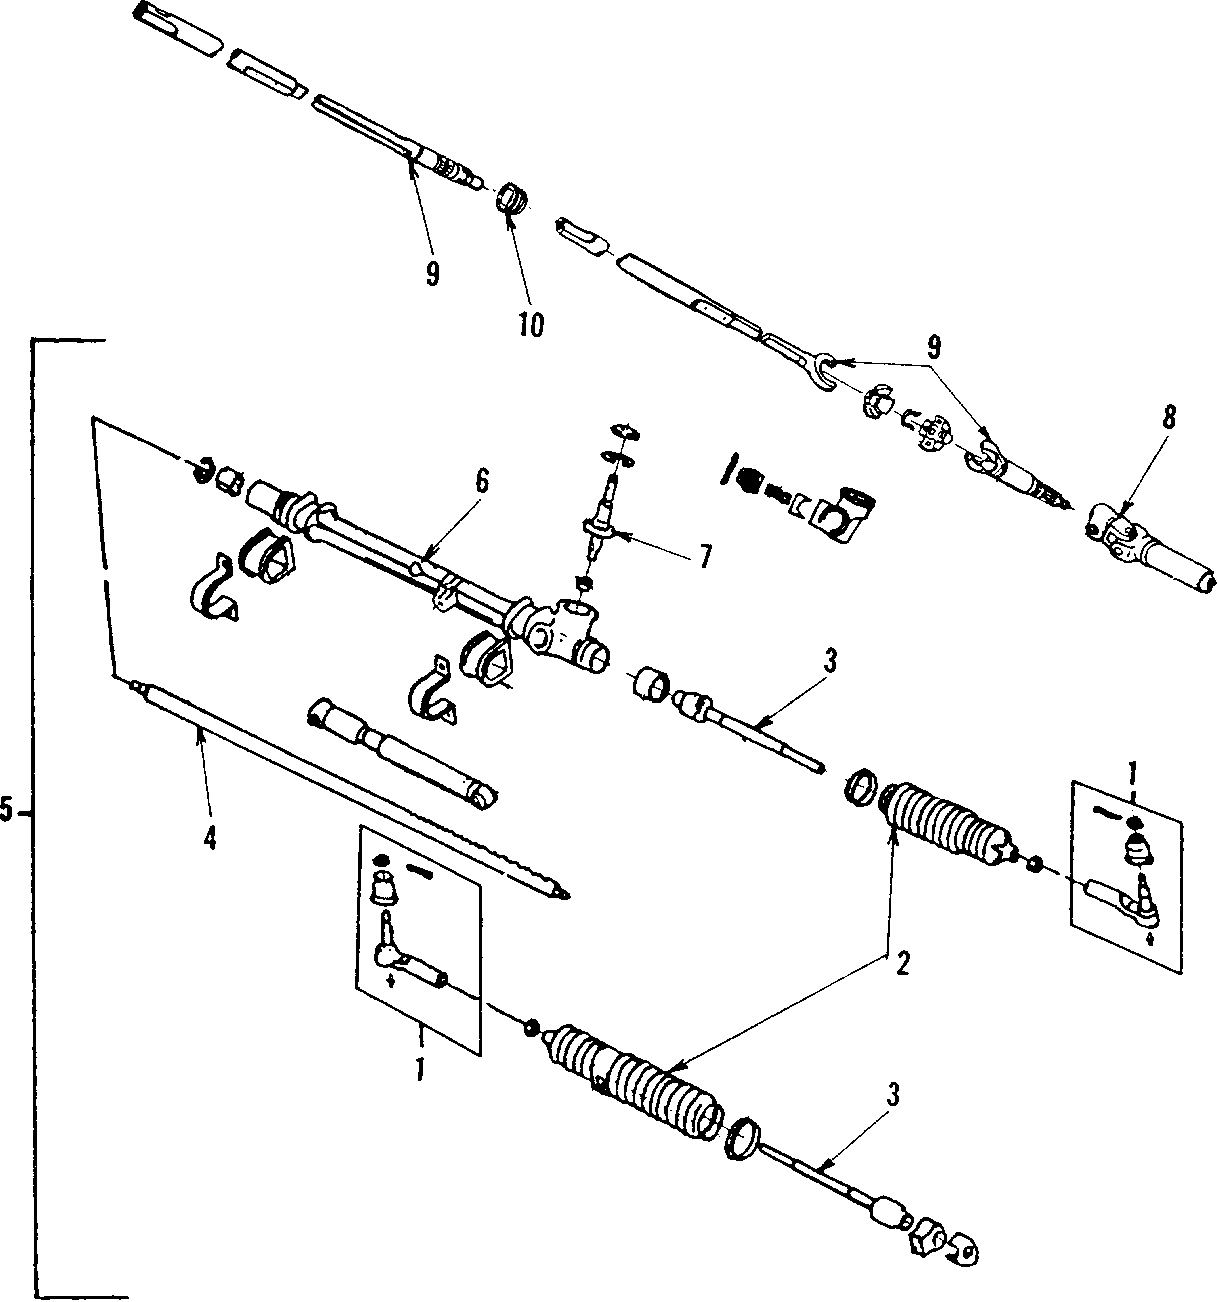 Pontiac Fiero Rack And Pinion Assembly Steering Gear